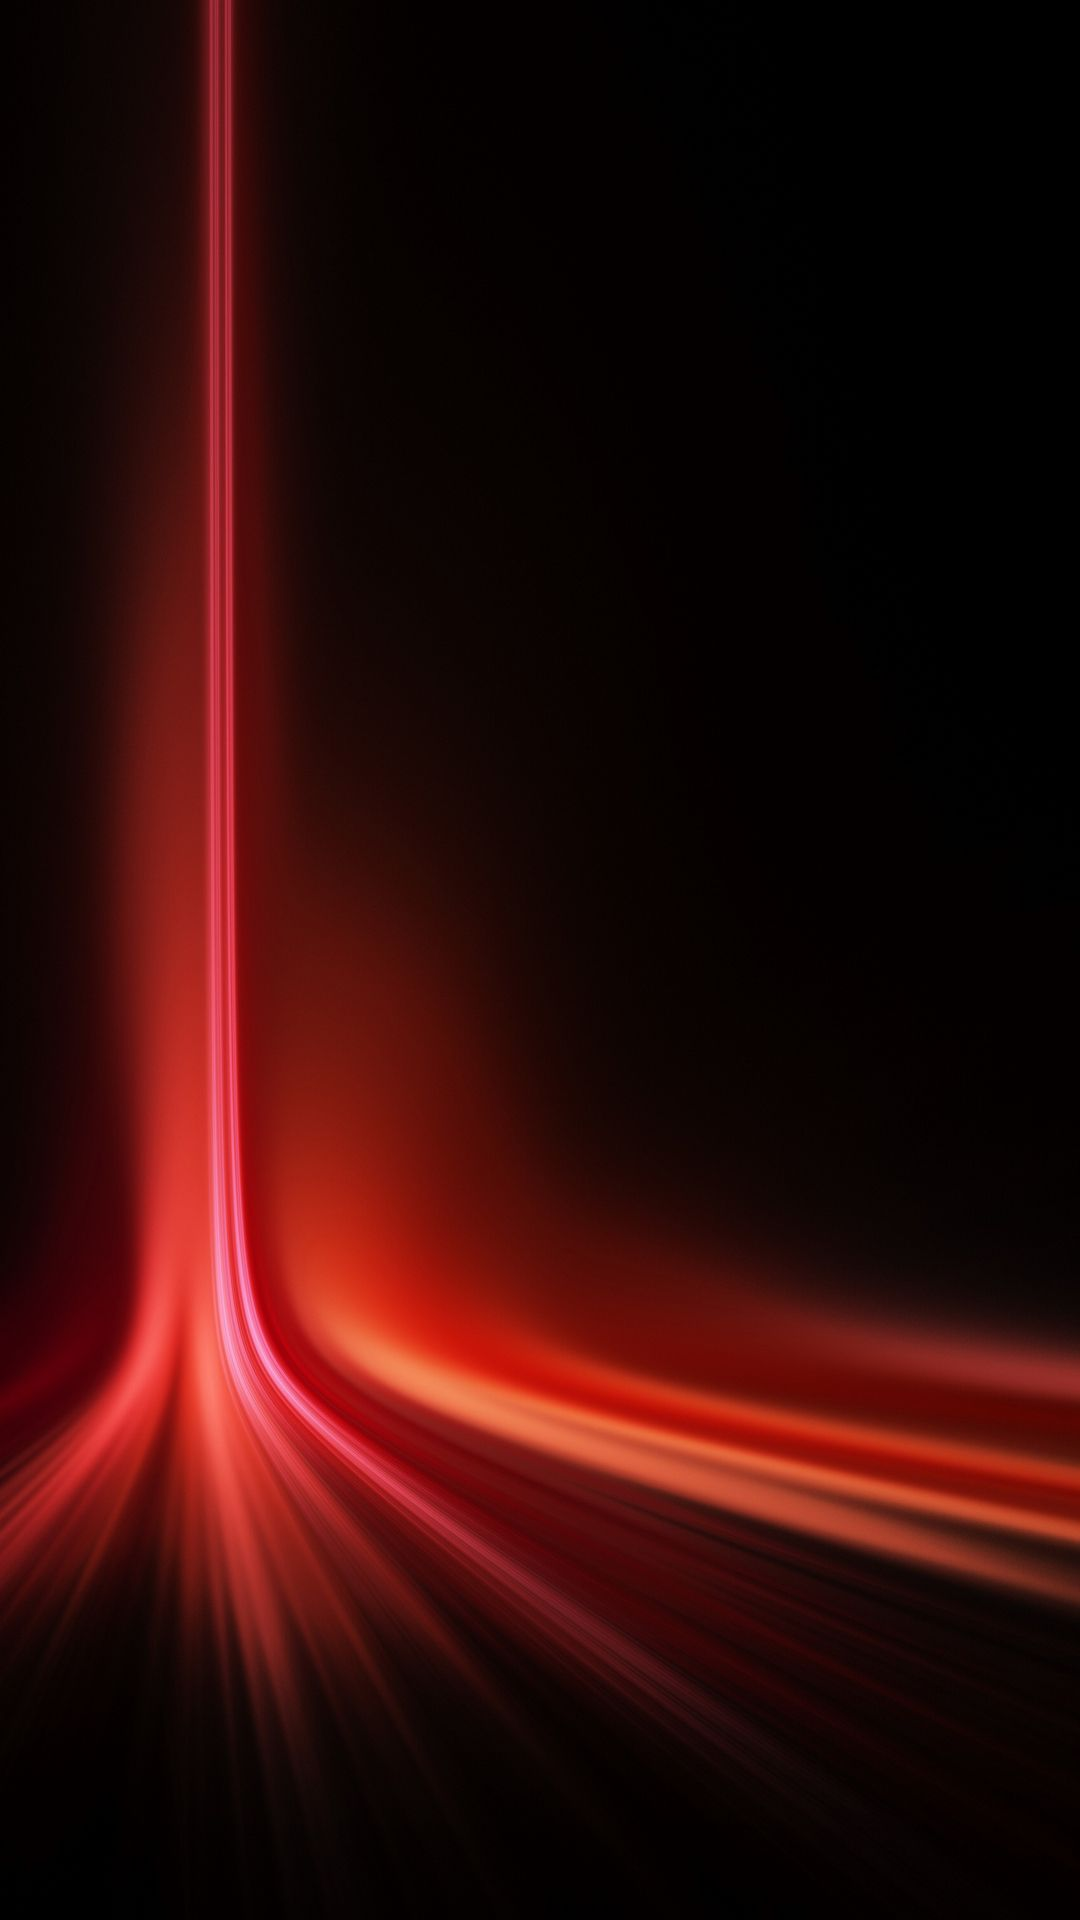 The Galaxy Note 3 Wallpaper Red Abstract I Just Pinned